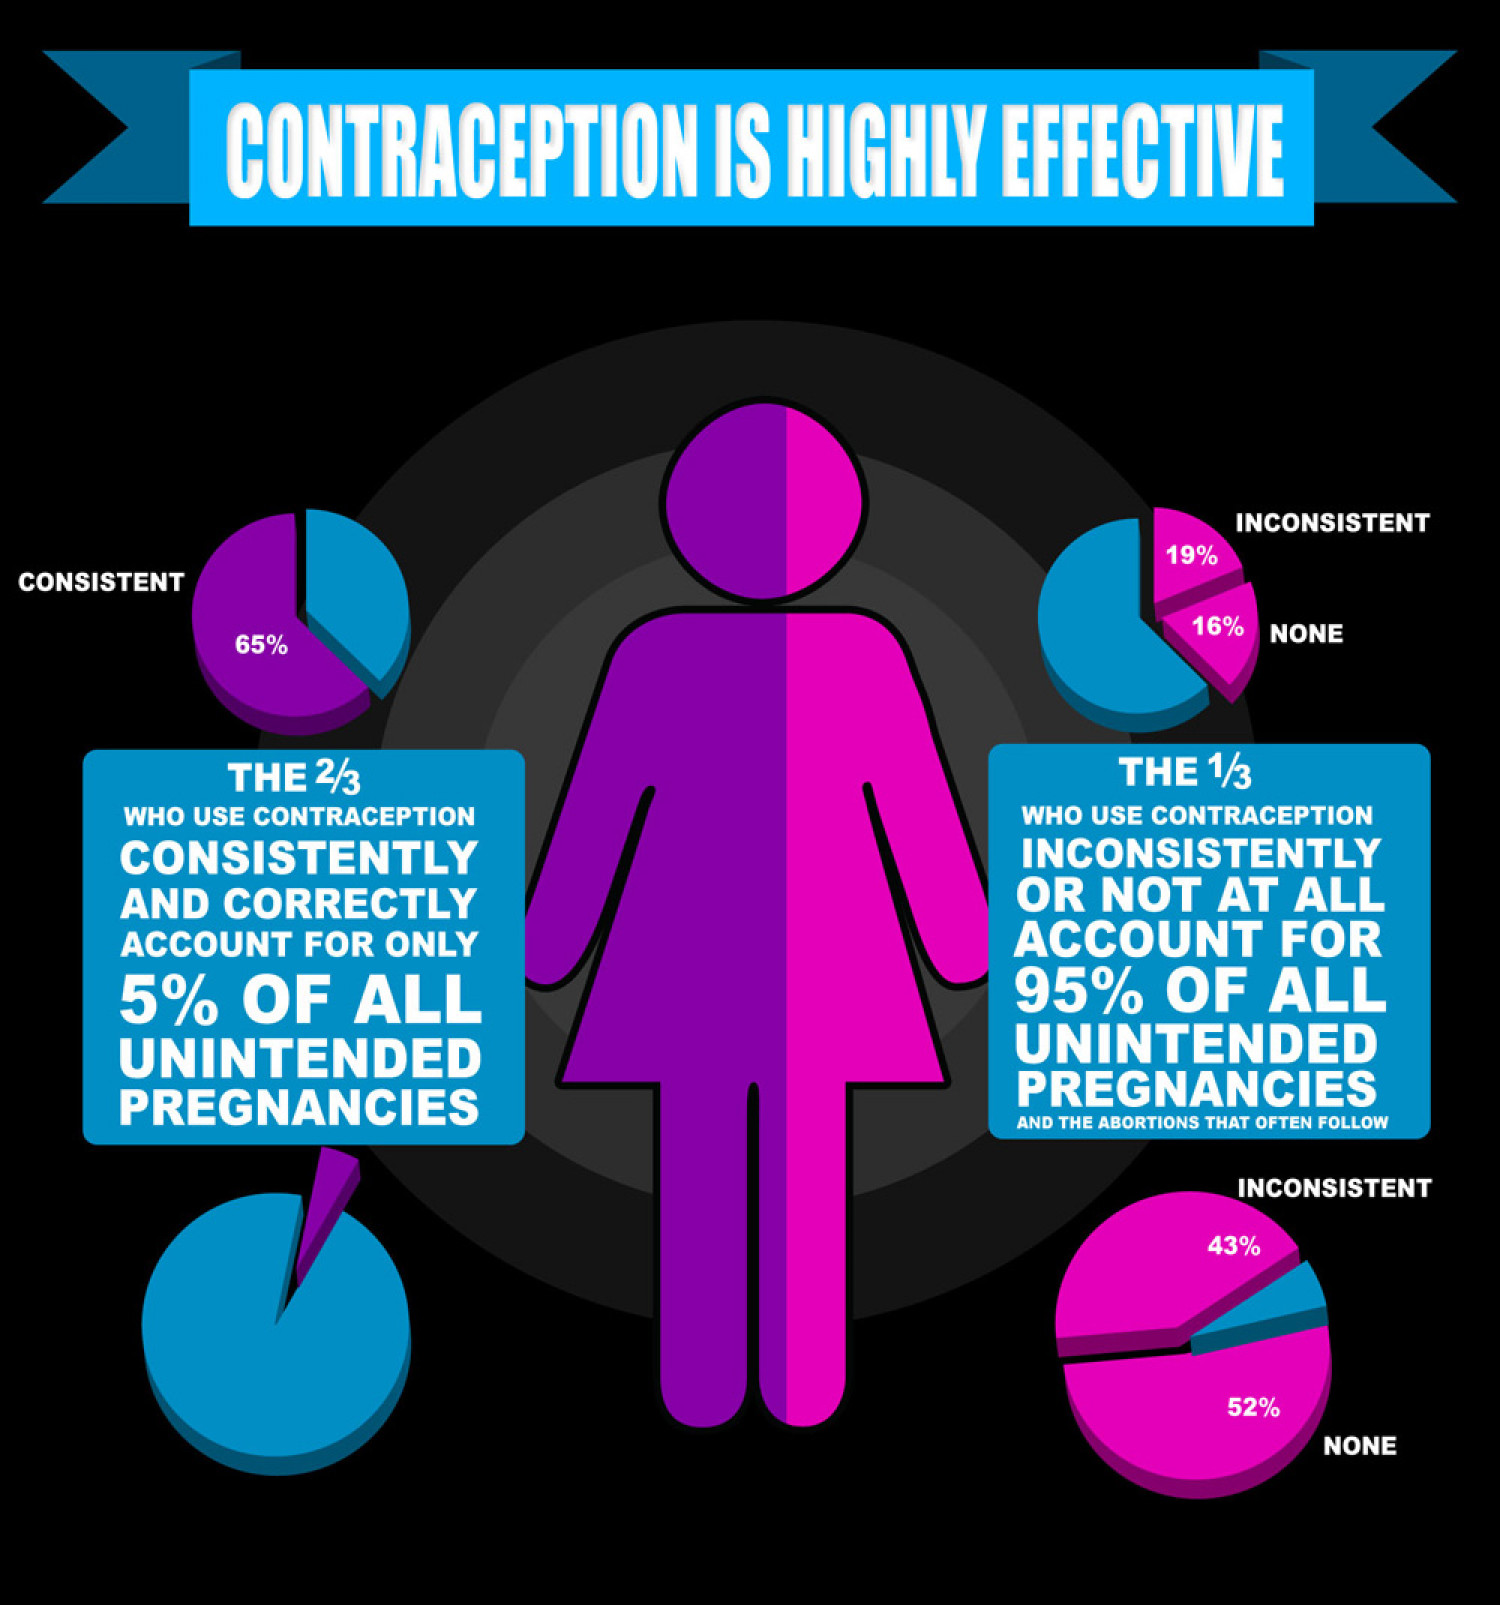 Contraception is Highly Effective Infographic